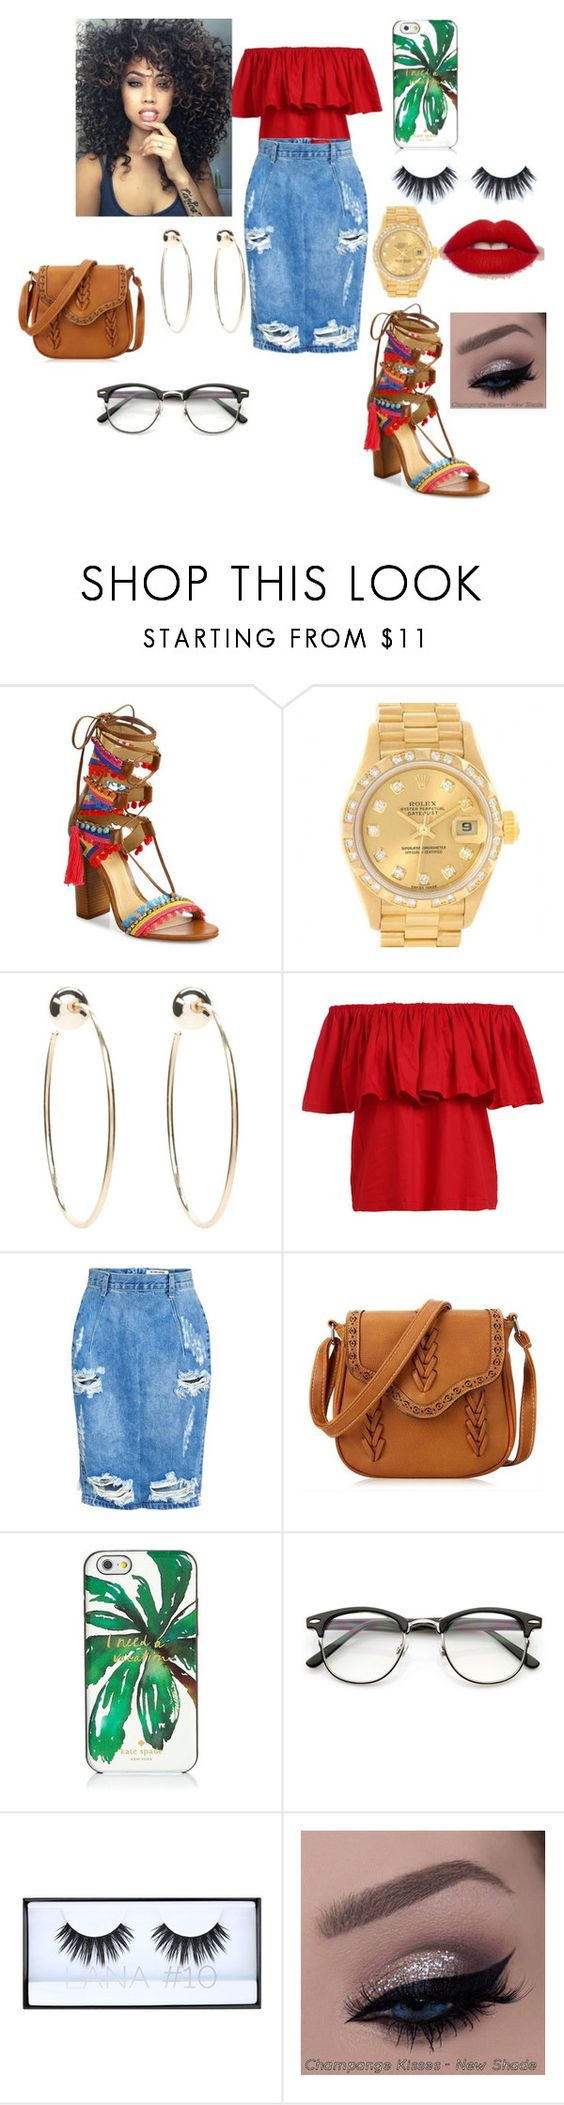 """""""Island gal. """" by kashout ❤ liked on Polyvore featuring Schutz, Rolex, Bebe, One Teaspoon, Kate Spade and Huda Beauty"""